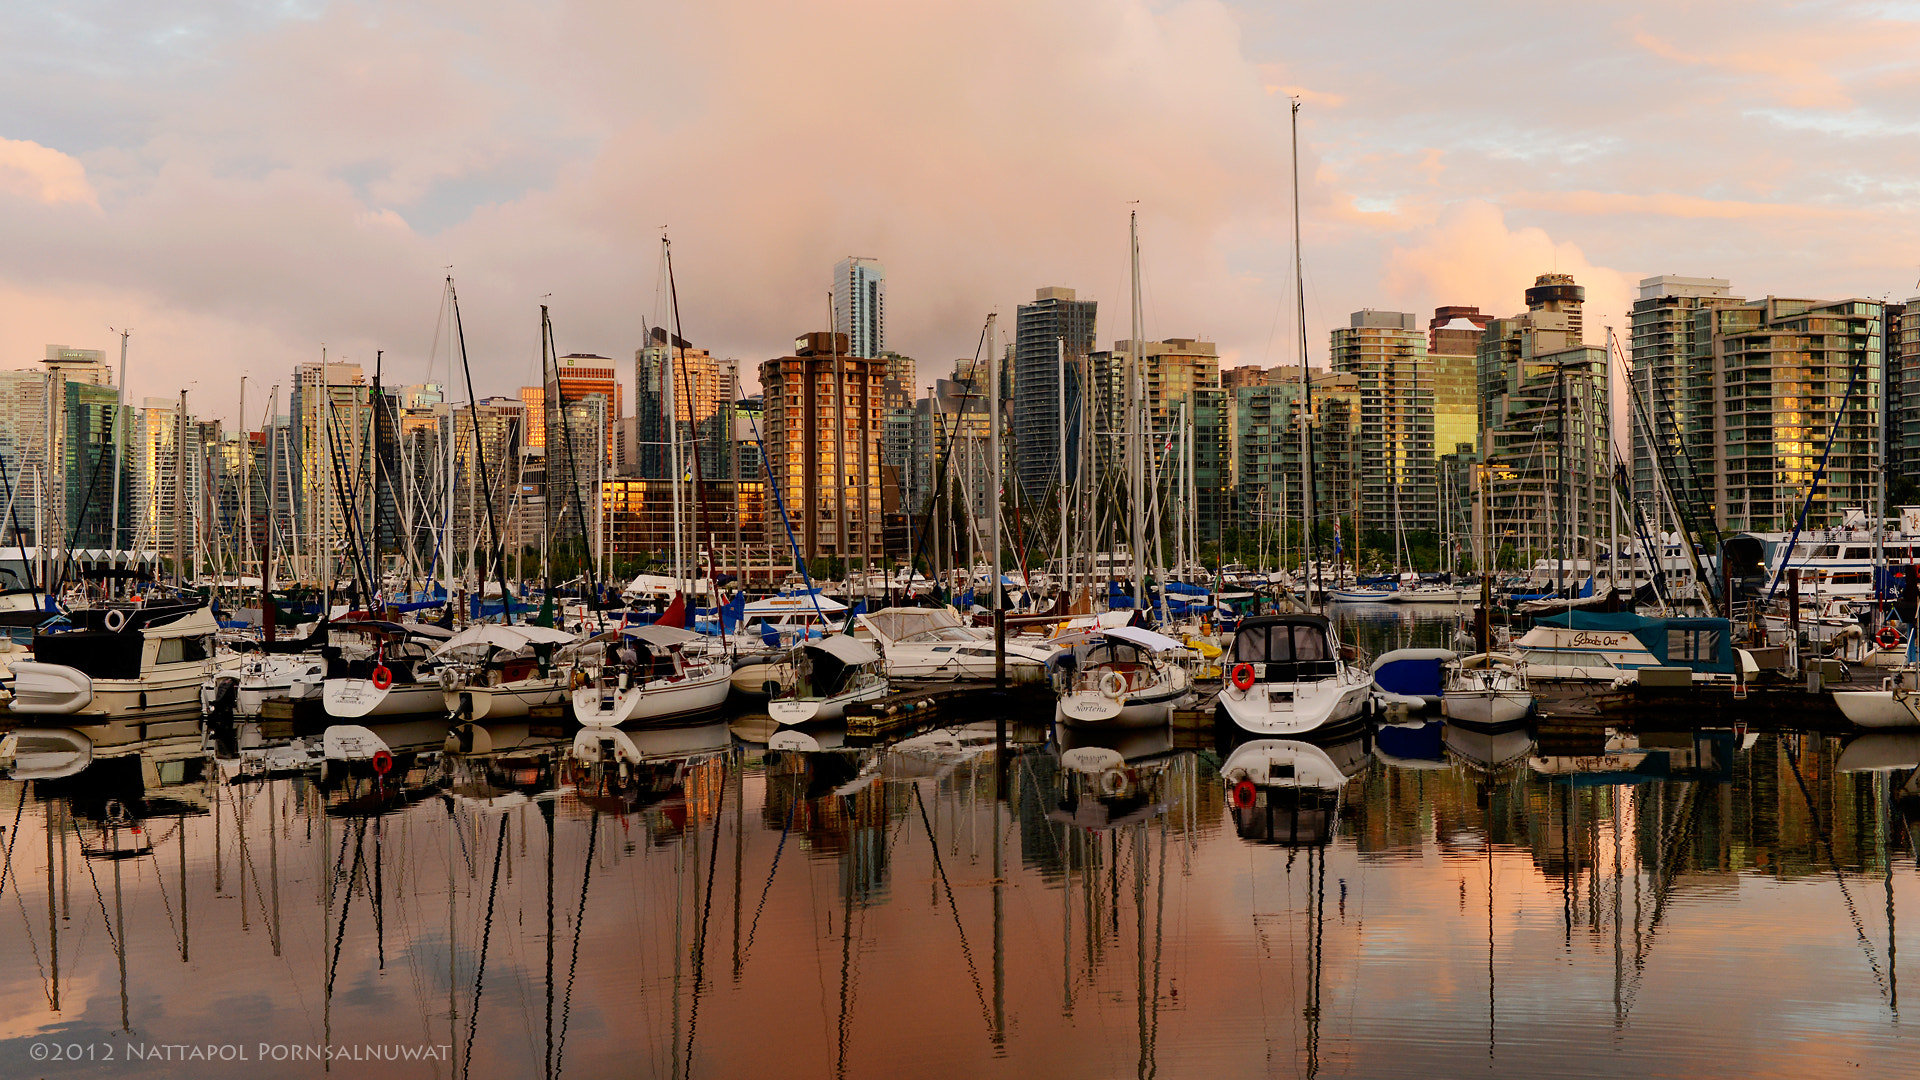 Photograph Coal Harbour by Nattapol Pornsalnuwat on 500px